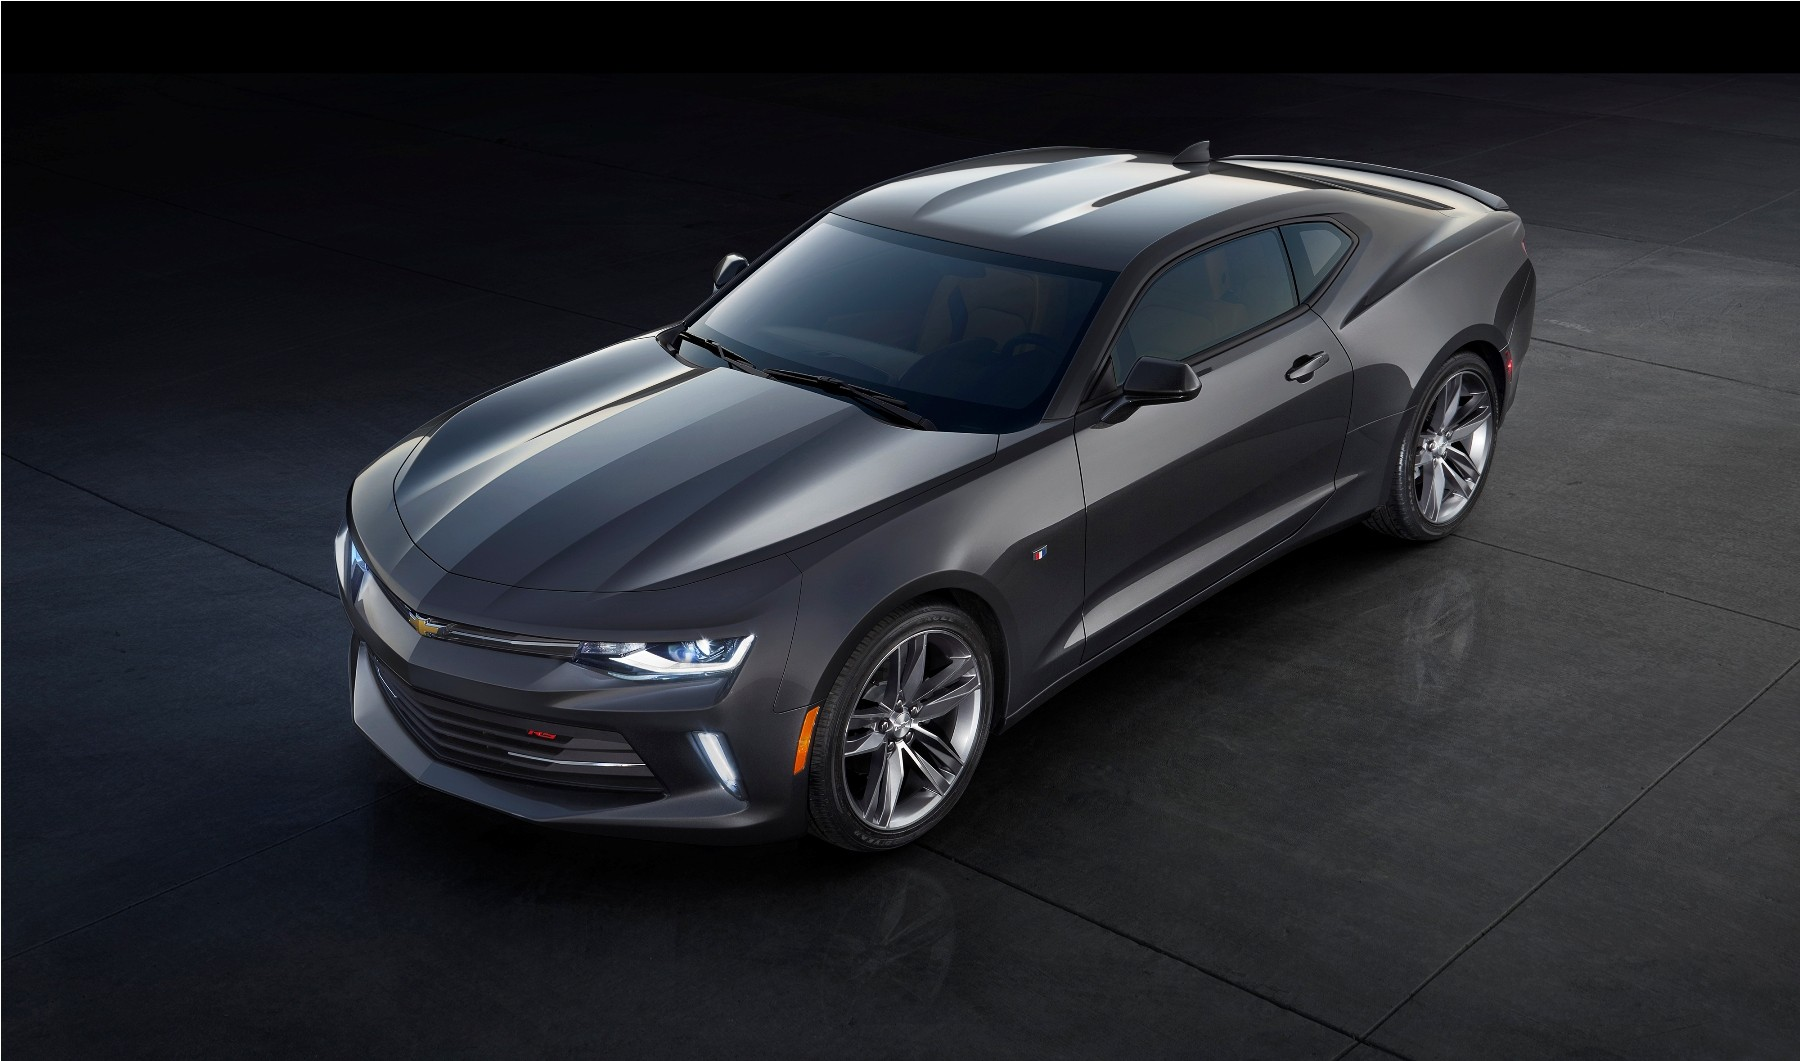 2016 Chevrolet Camaro Pilot Production Begins in Lansing - autoevolution